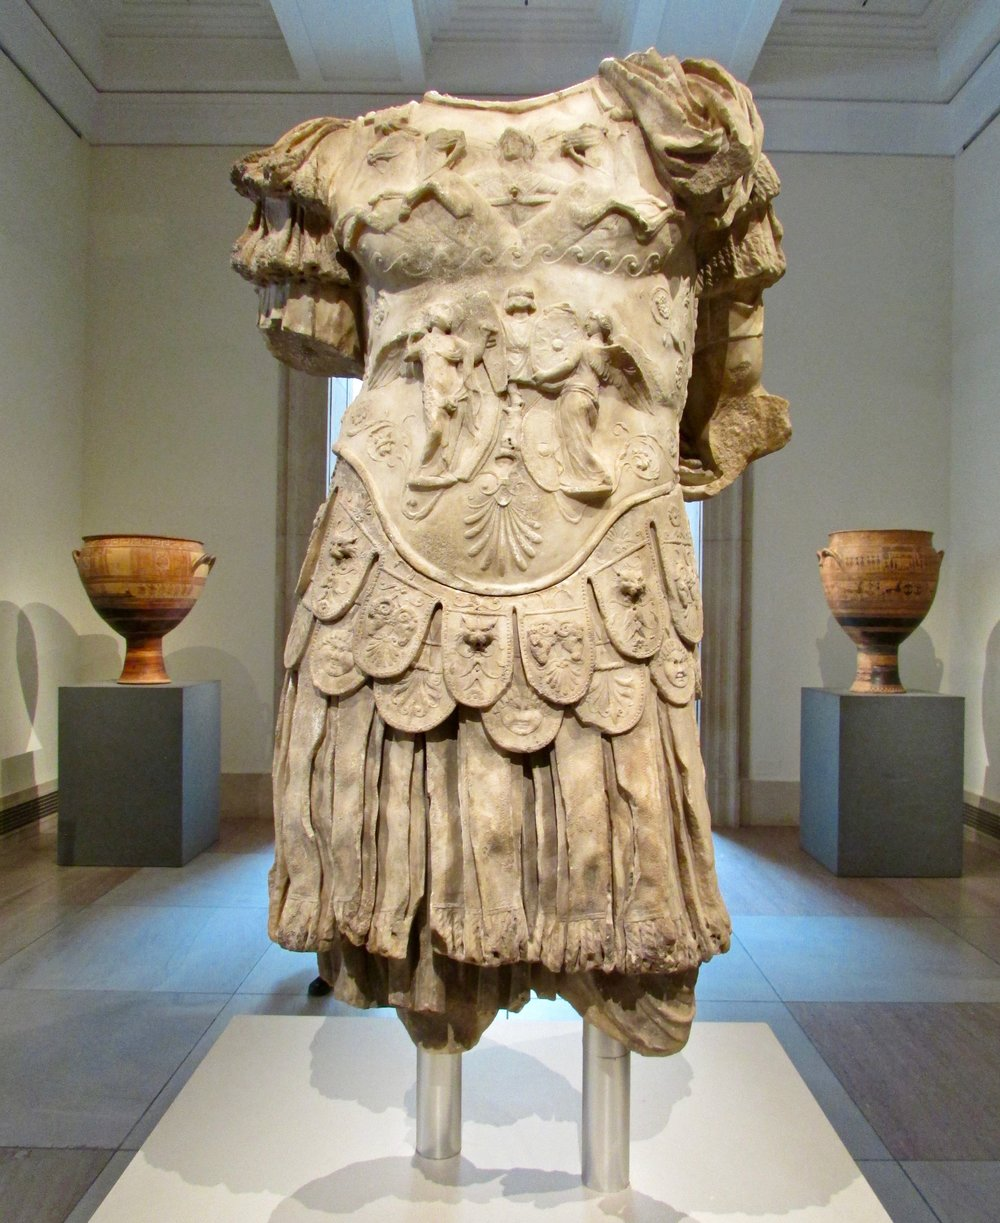 GreekSculpture.jpg